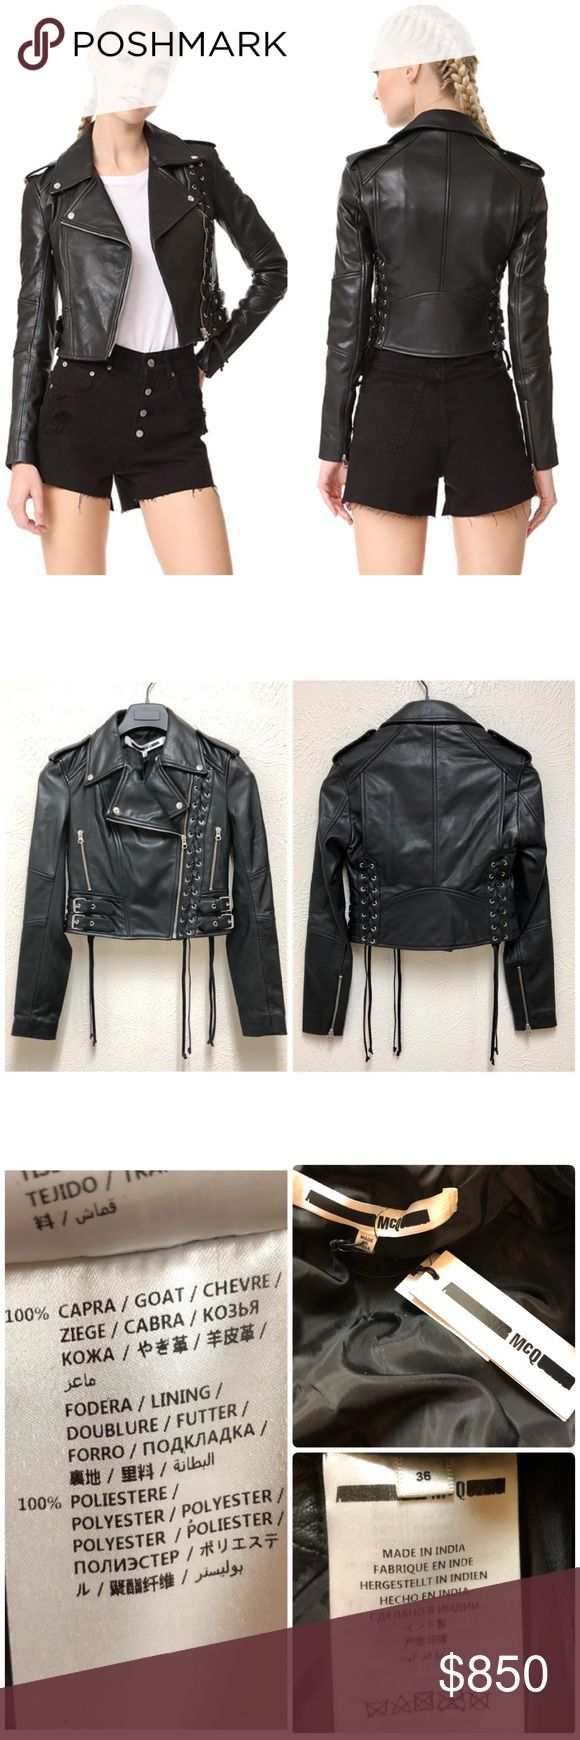 McQ Alexander McQueen Lace Up Leather Jacket US 0 New with tag.  Small security tag mark (shown in last picture).  Size: 0 US/36 IT Retail: $1350 plus tax  ❌No Trade ❌Lowball Offer Will be IGNORED&BLOCKED.  ⚡️Serious Buyer ONLY⚡️NO DRAMA! ⭐️Same/next day shipping via USPS ⚠I video record all sales from packing to shipping so we are both protected ⚠ Alexander McQueen Jackets & Coats